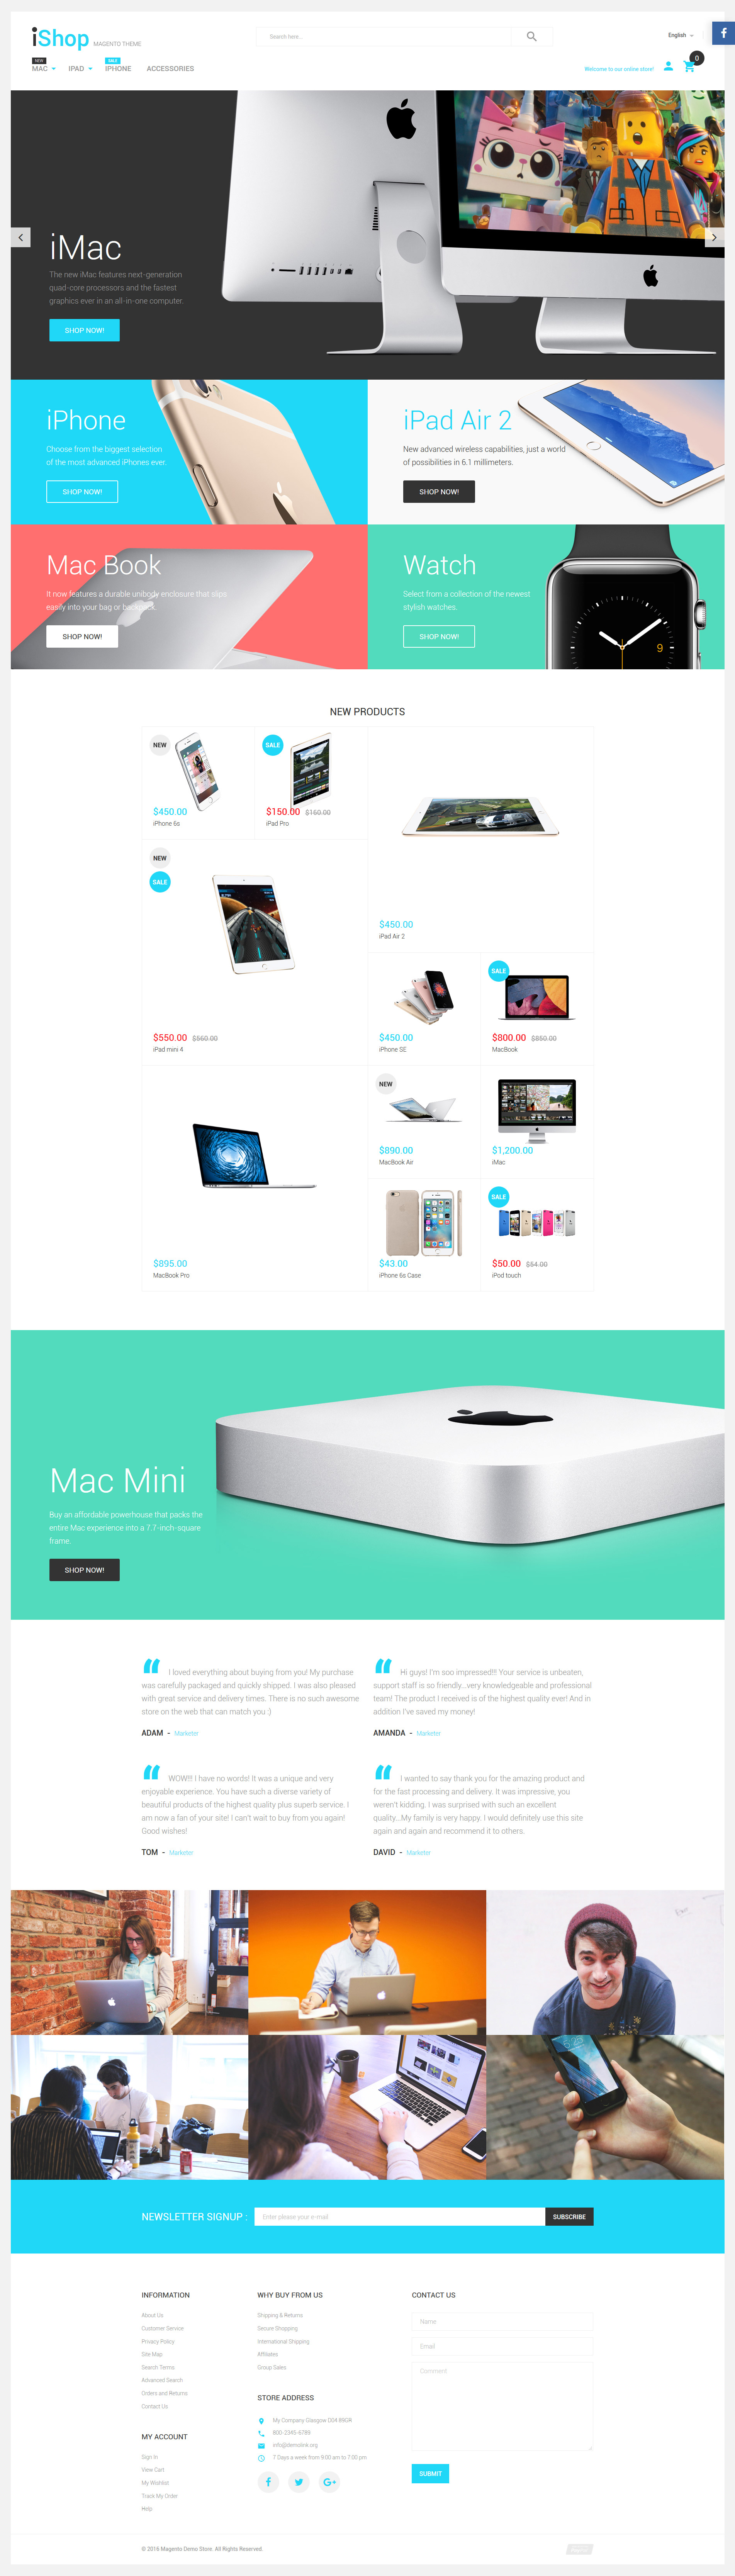 iShop - Electronic Devices №58834